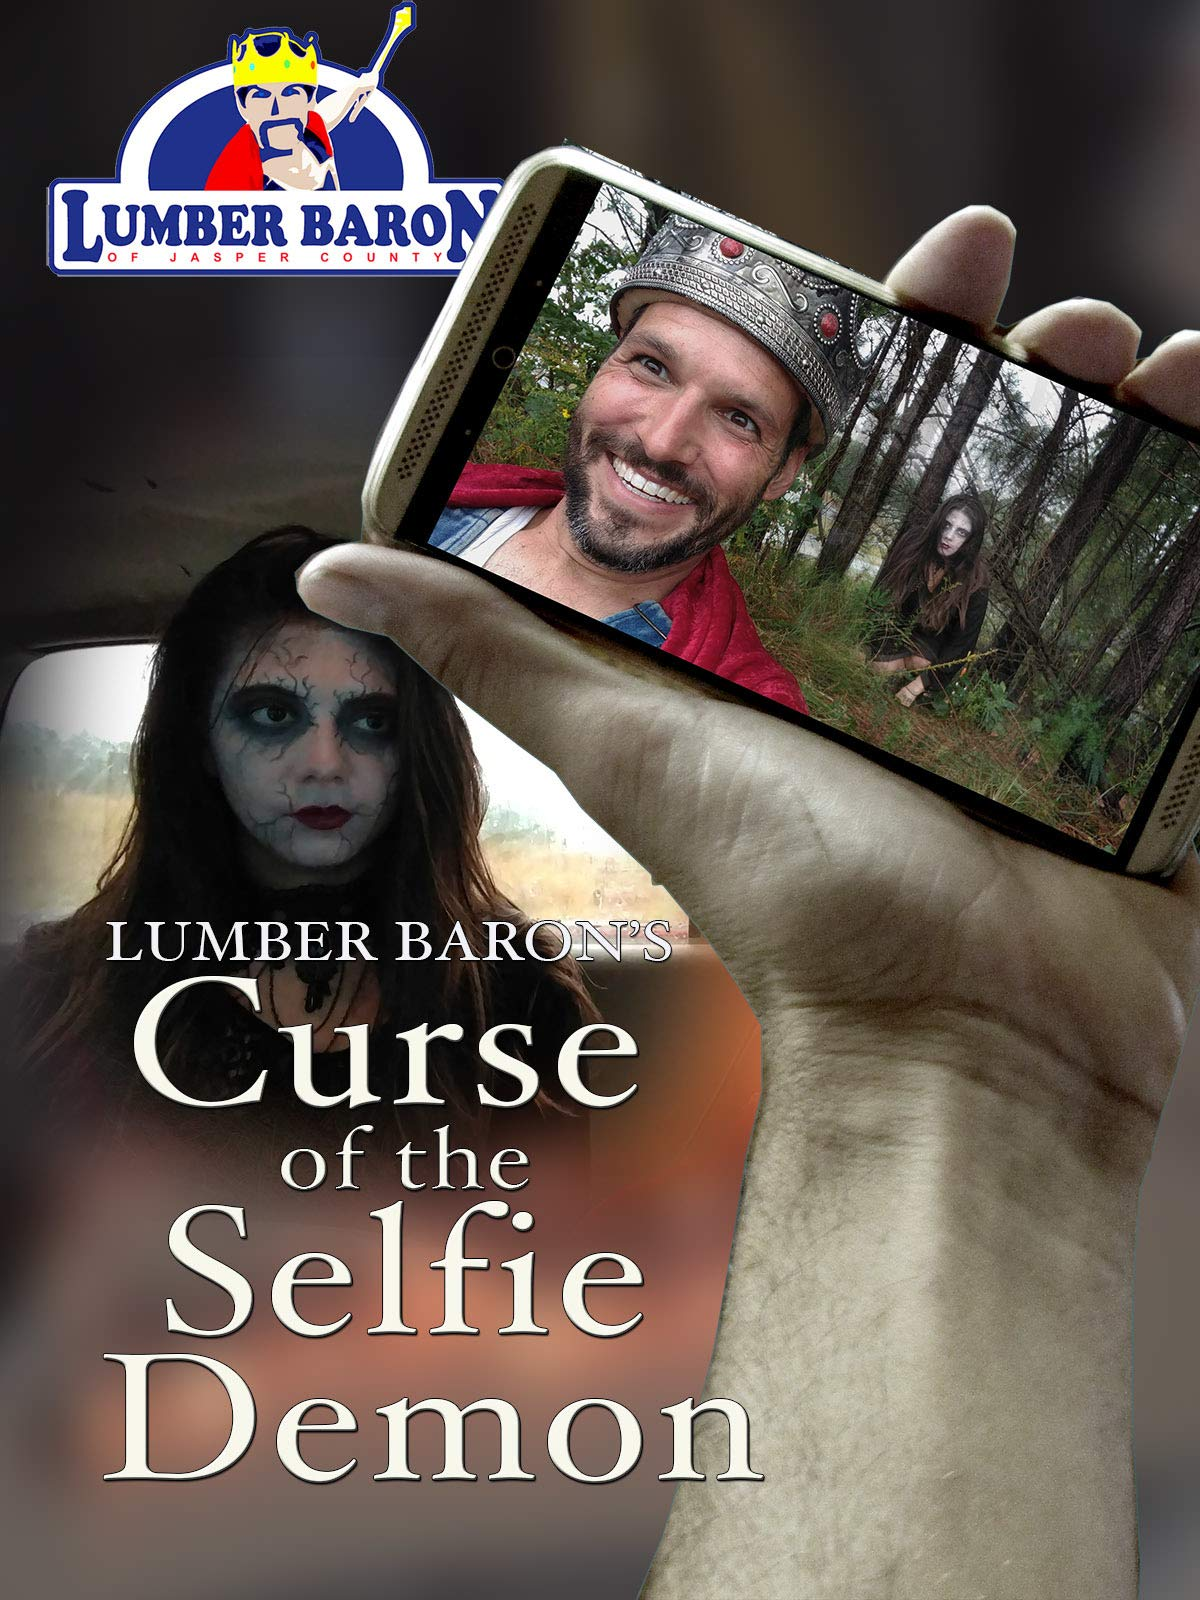 Lumber Baron's Curse of the Selfie Demon